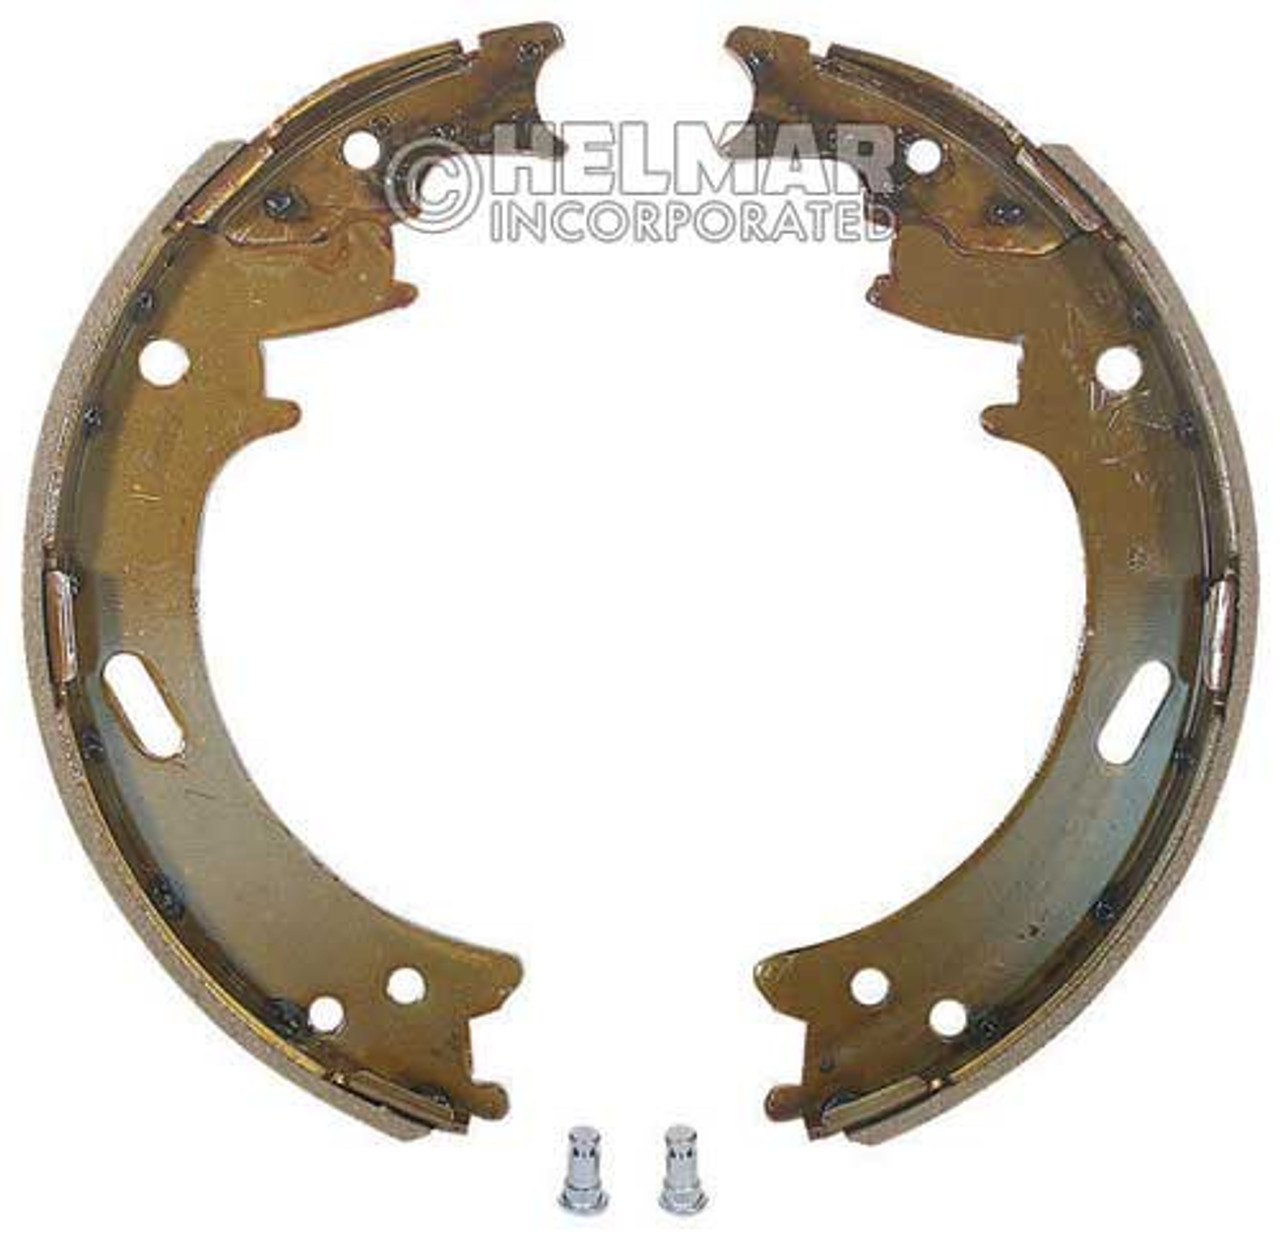 2047123 Hyster Brake Shoes Set Type 2BS-10, 2 Shoes